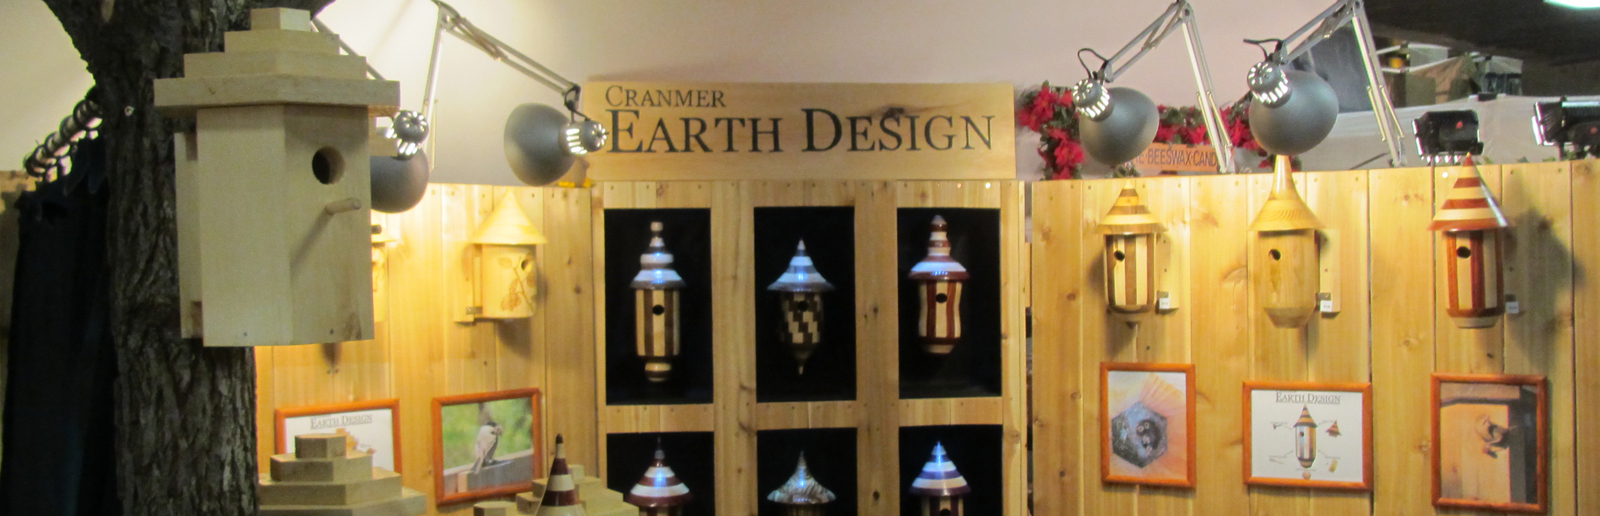 Cranmer Earth Design Shows and Events